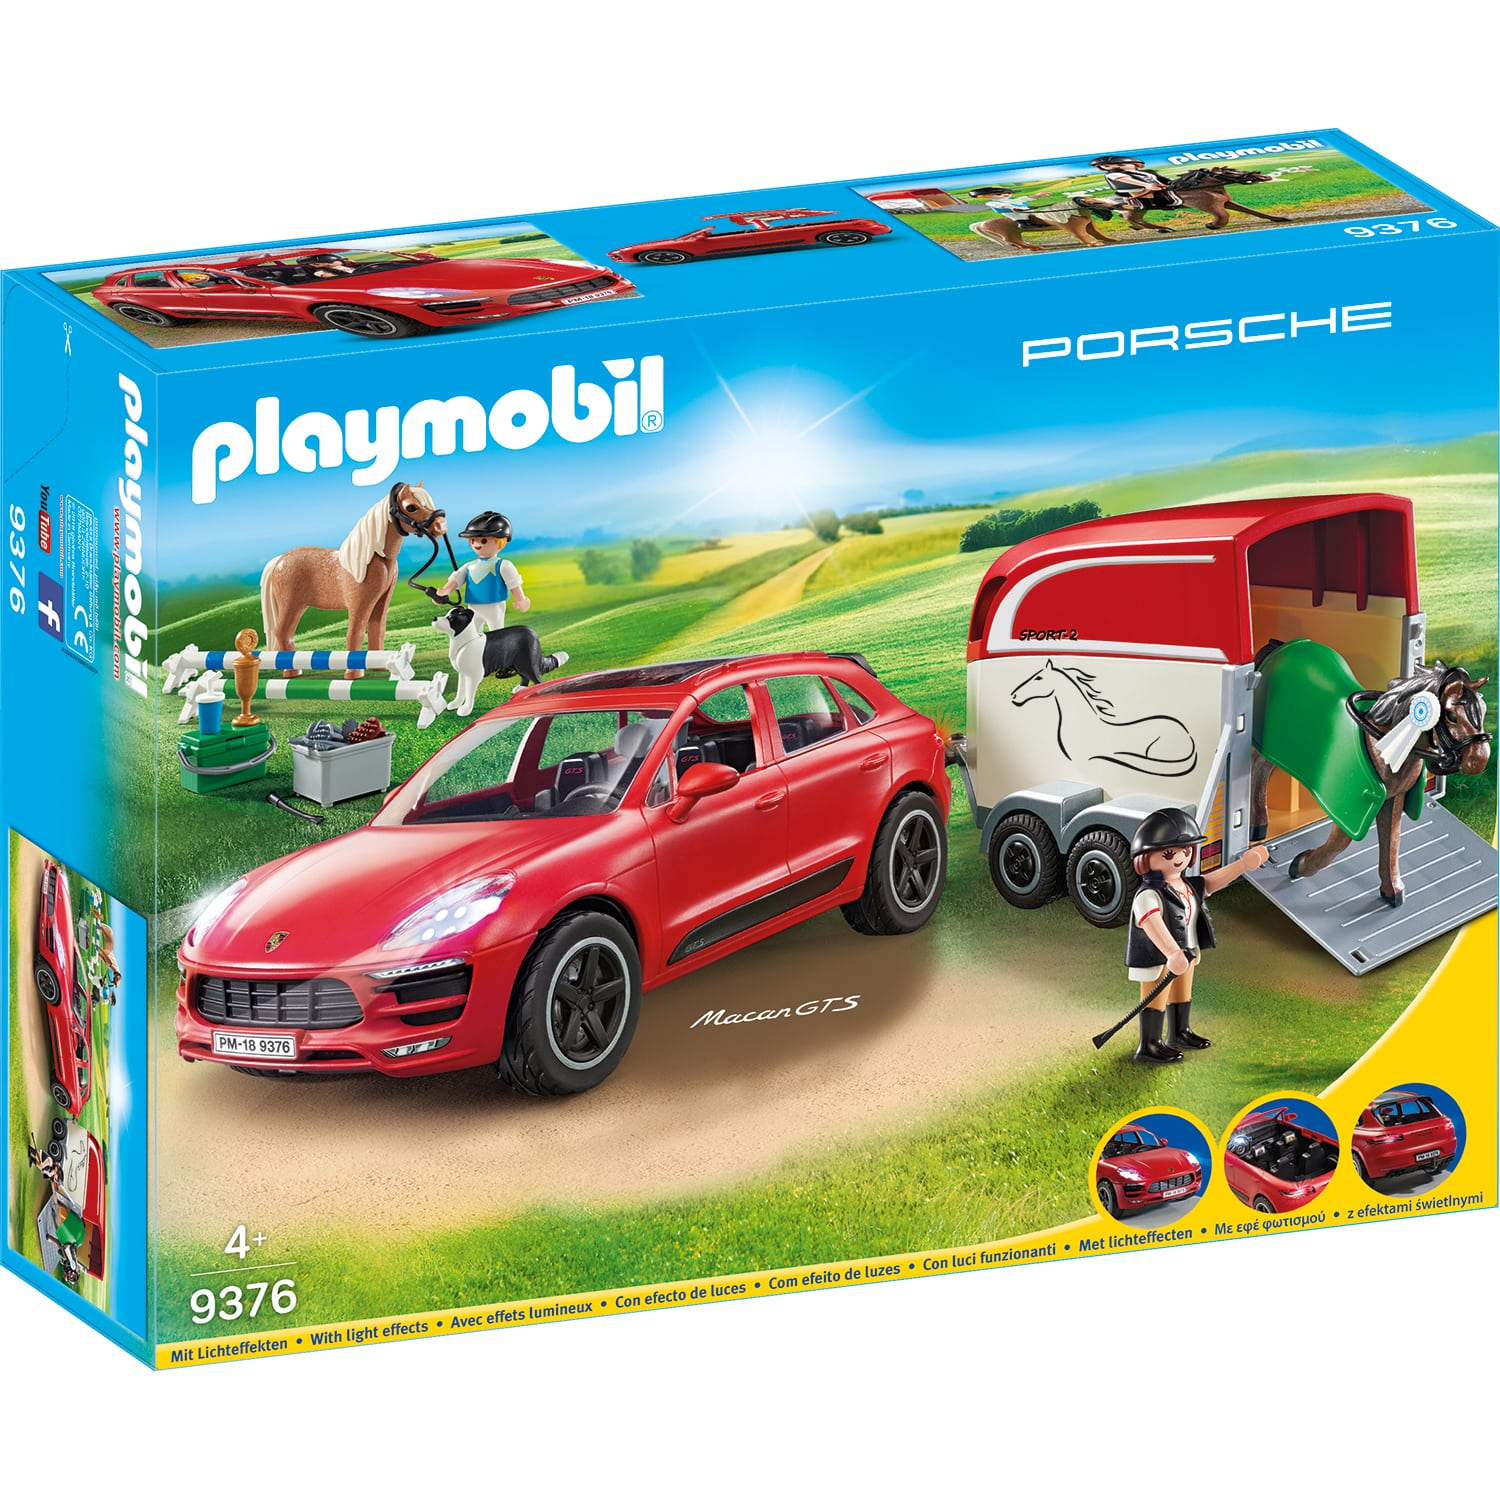 Fotografie Playmobil City Action - Porsche Macan GTS